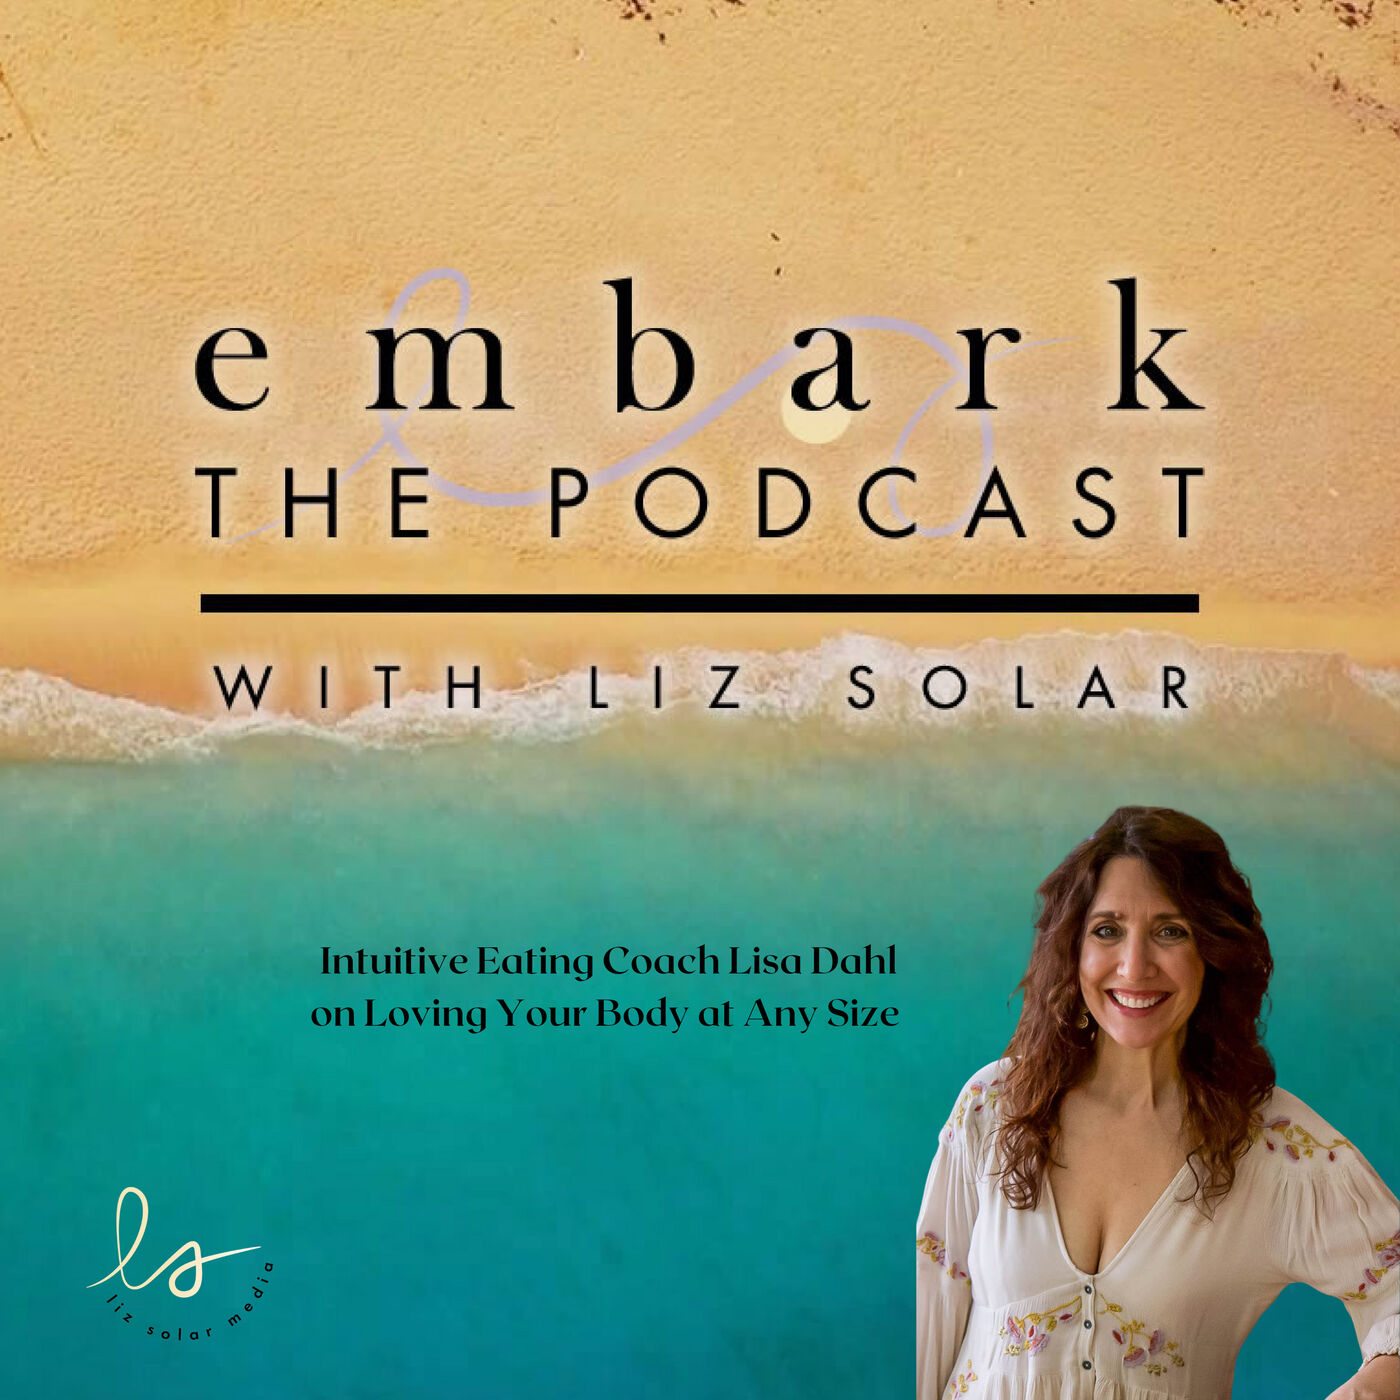 Intuitive Eating Coach Lisa Dahl on Loving Your Body at Any Size